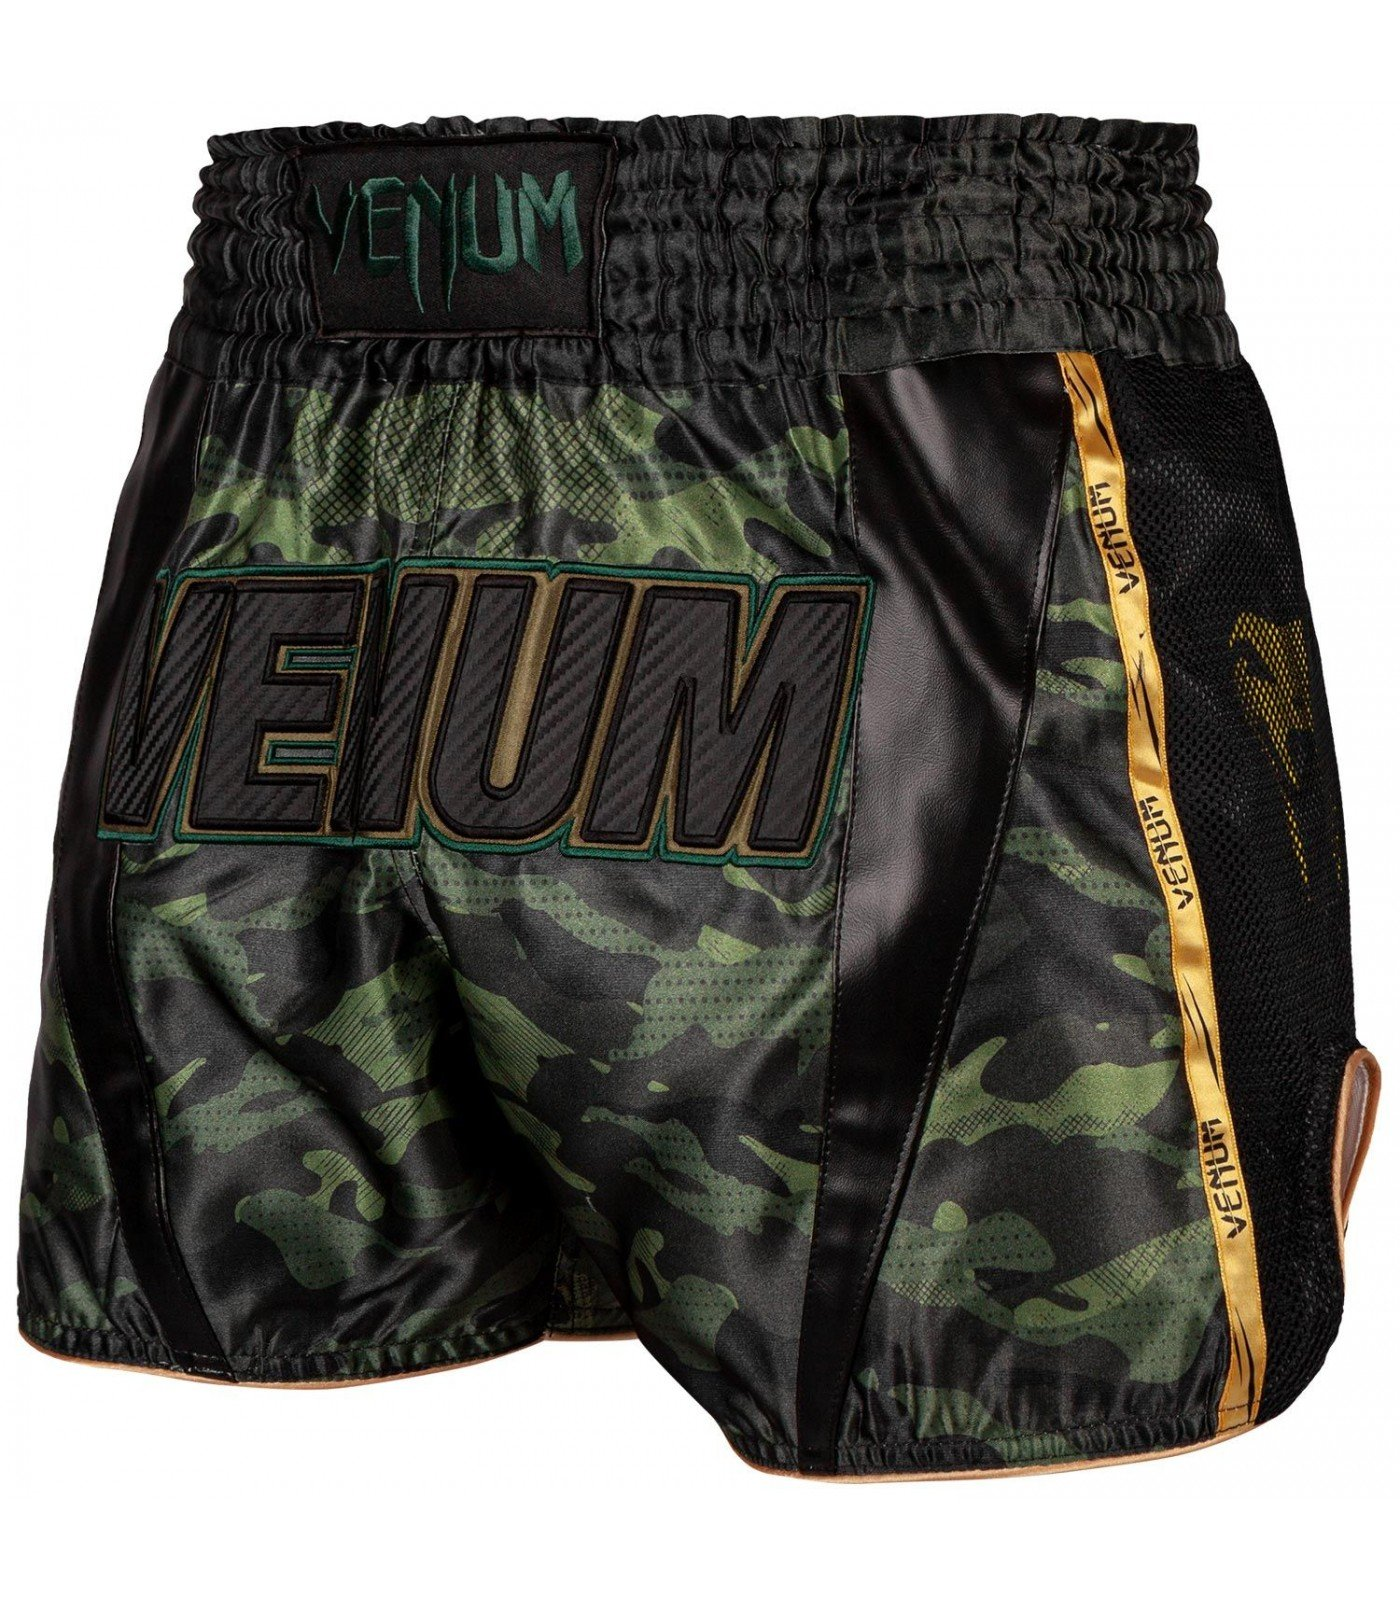 Муай Тай Шорти - Venum Full Cam Muay Thai Shorts - Forest Camo​